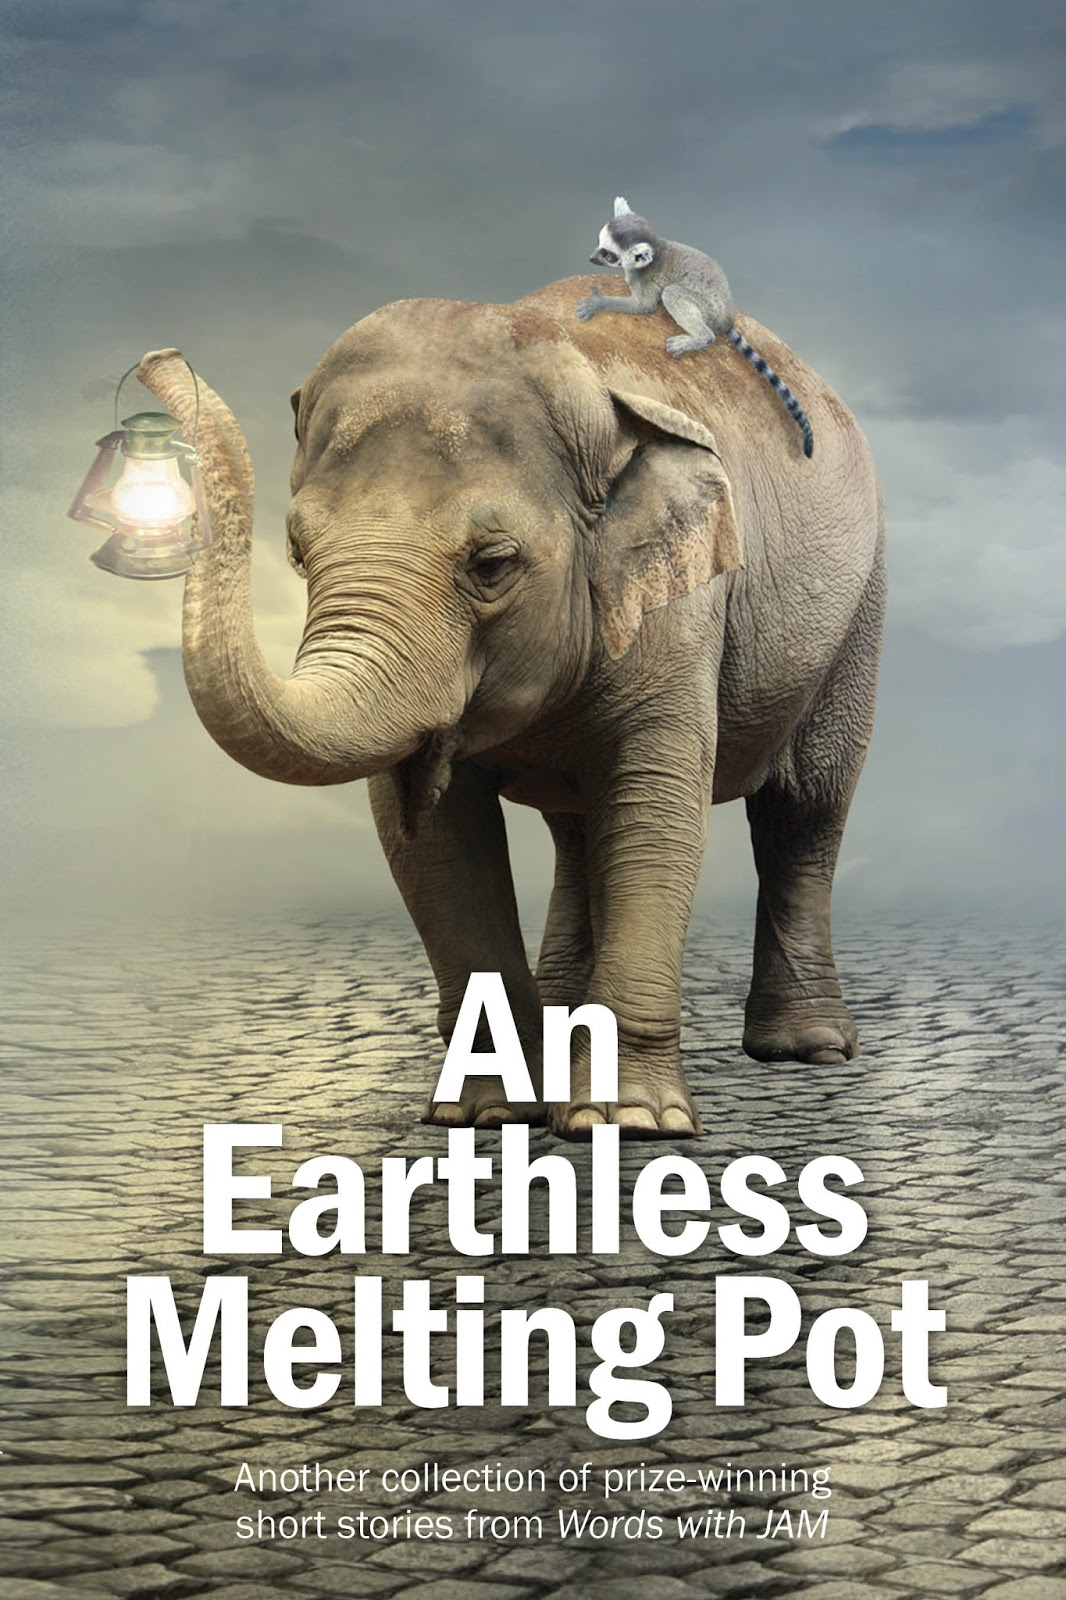 We Are Highly Excited To Announce To Launch Of An Earthless Melting Pot,  Our Third Volume Of Prizewinning Short Stories From The Words With Jam  Bigger